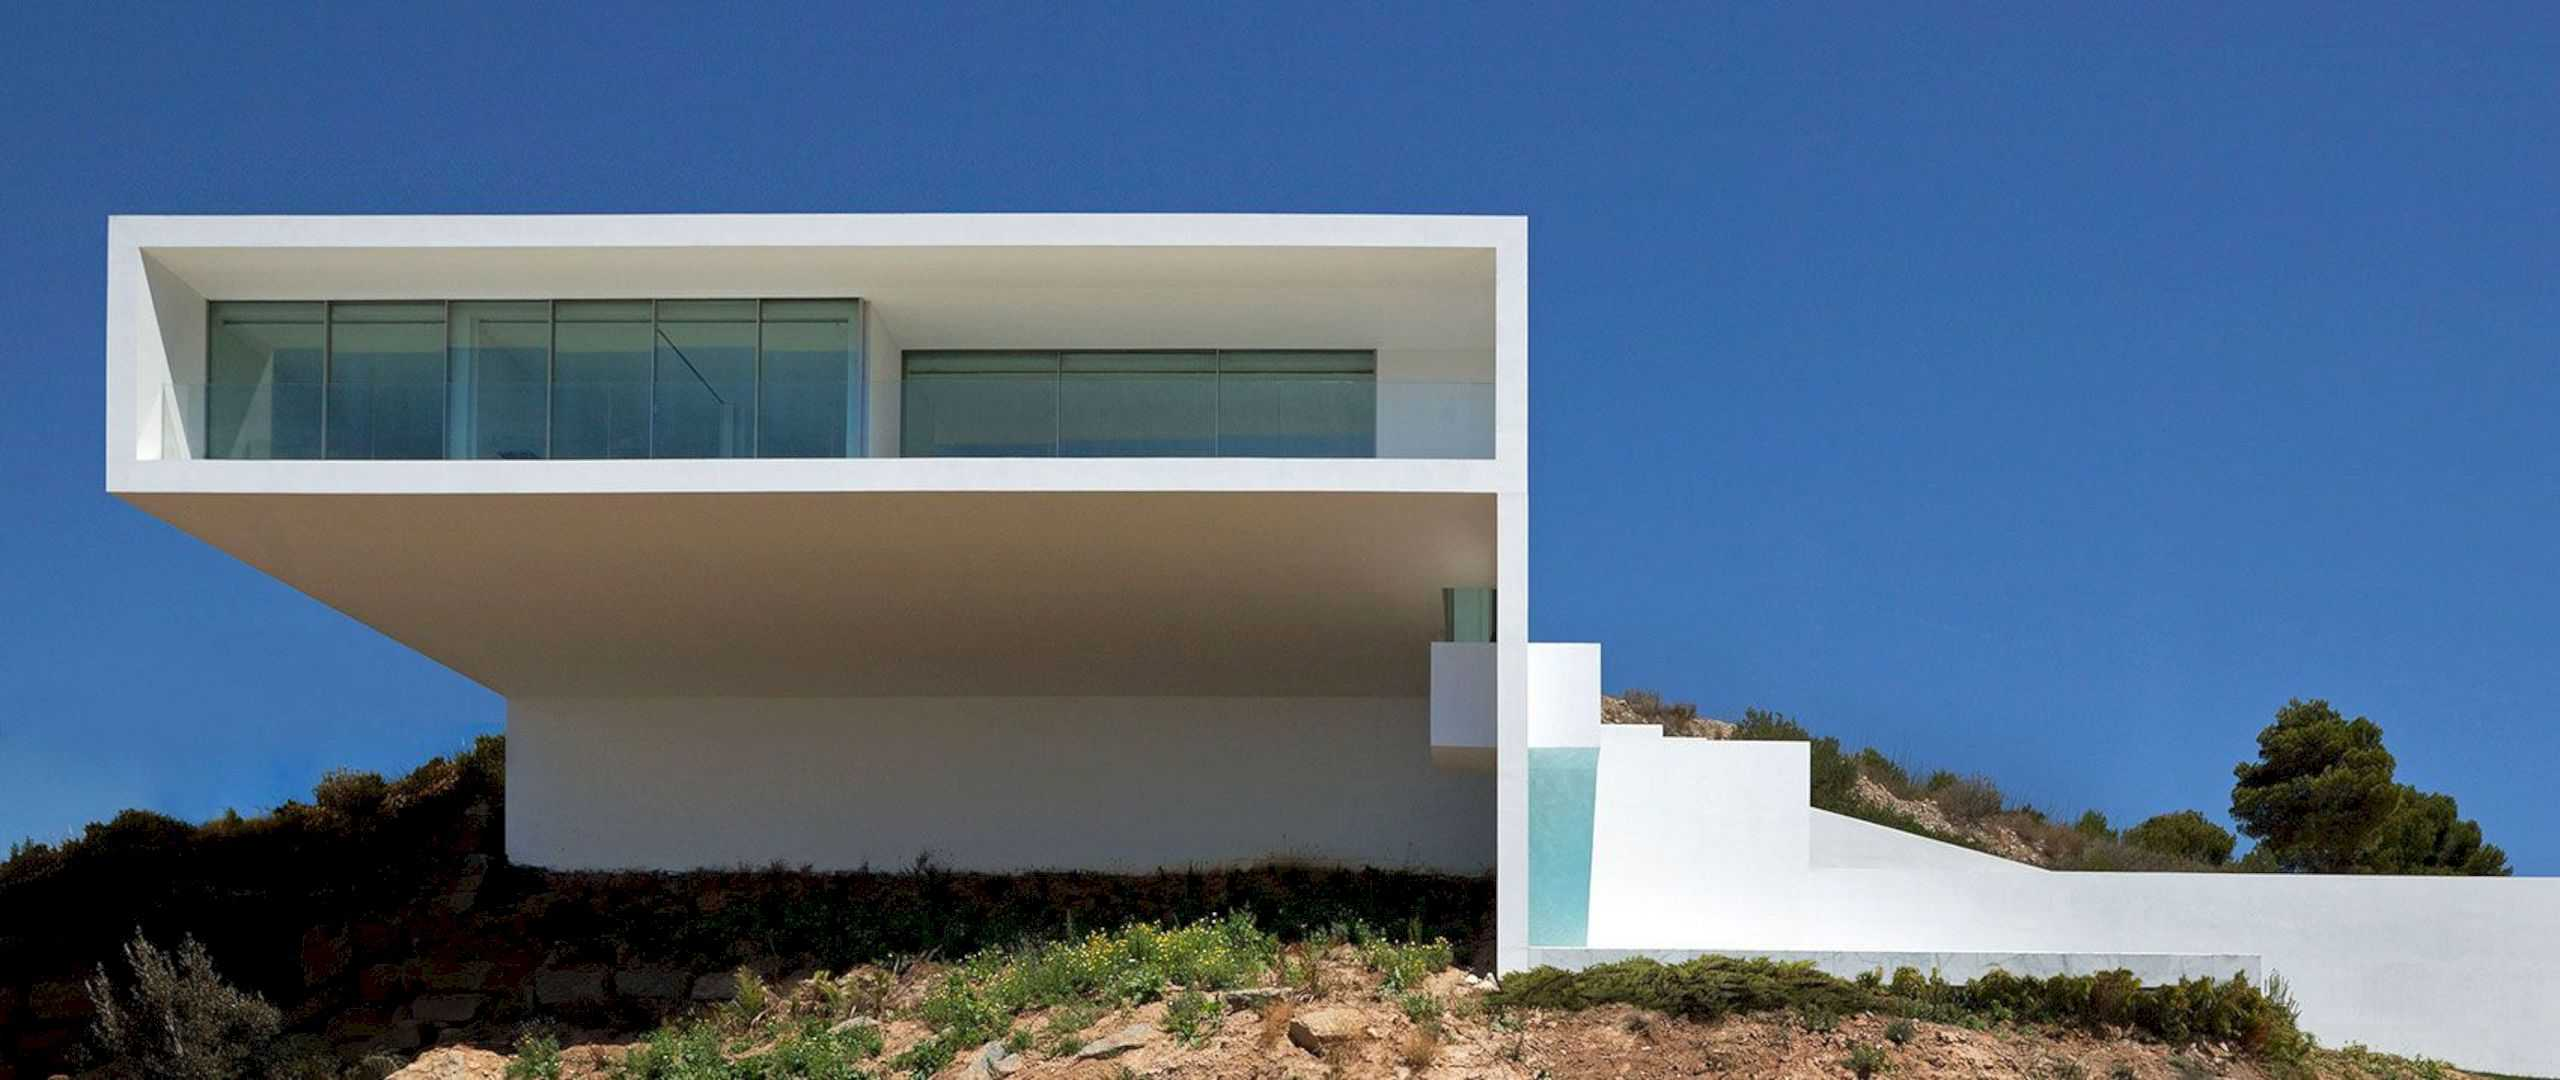 HOUSE ON THE CLIFF 8